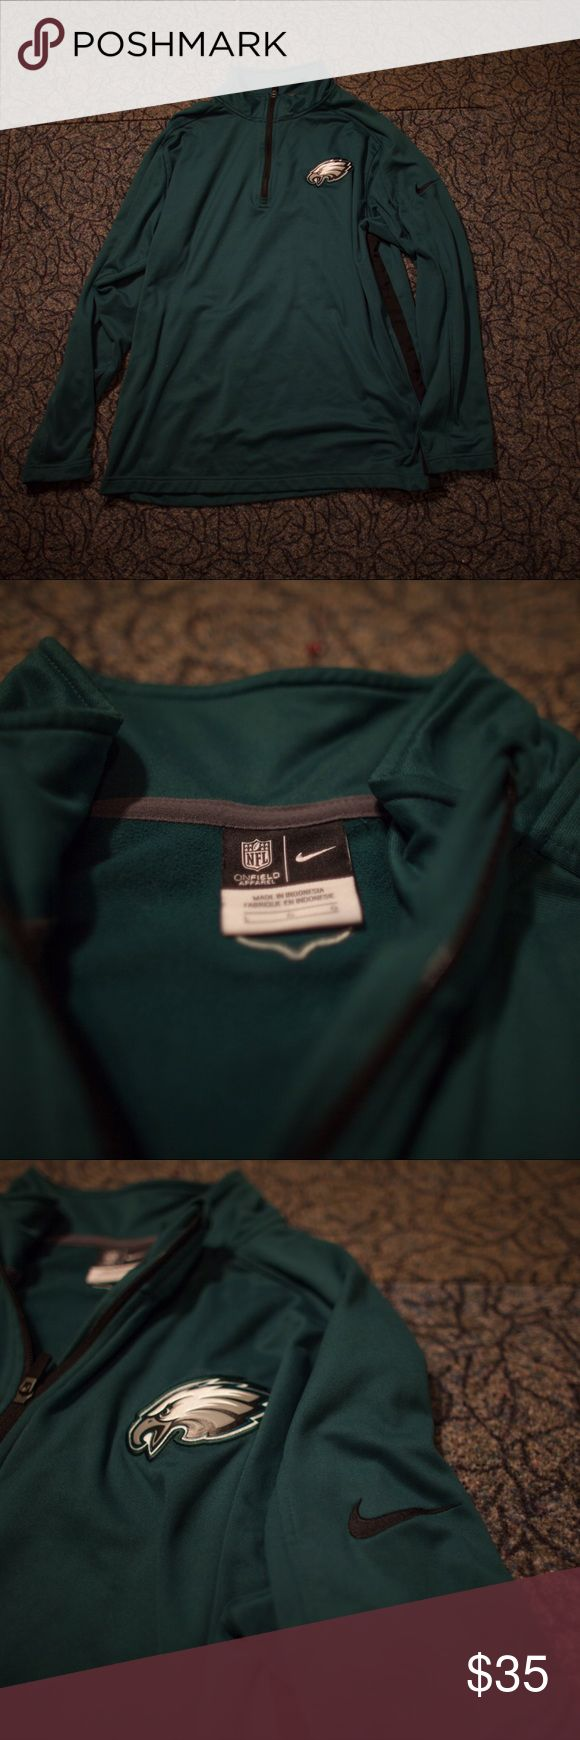 Philadelphia Eagles Nike NFL Pullover Pretty much brand new, worn only a few times. Official Nike NFL merchandise, size large. Super comfortable, and sharp. Nike Jackets & Coats Performance Jackets